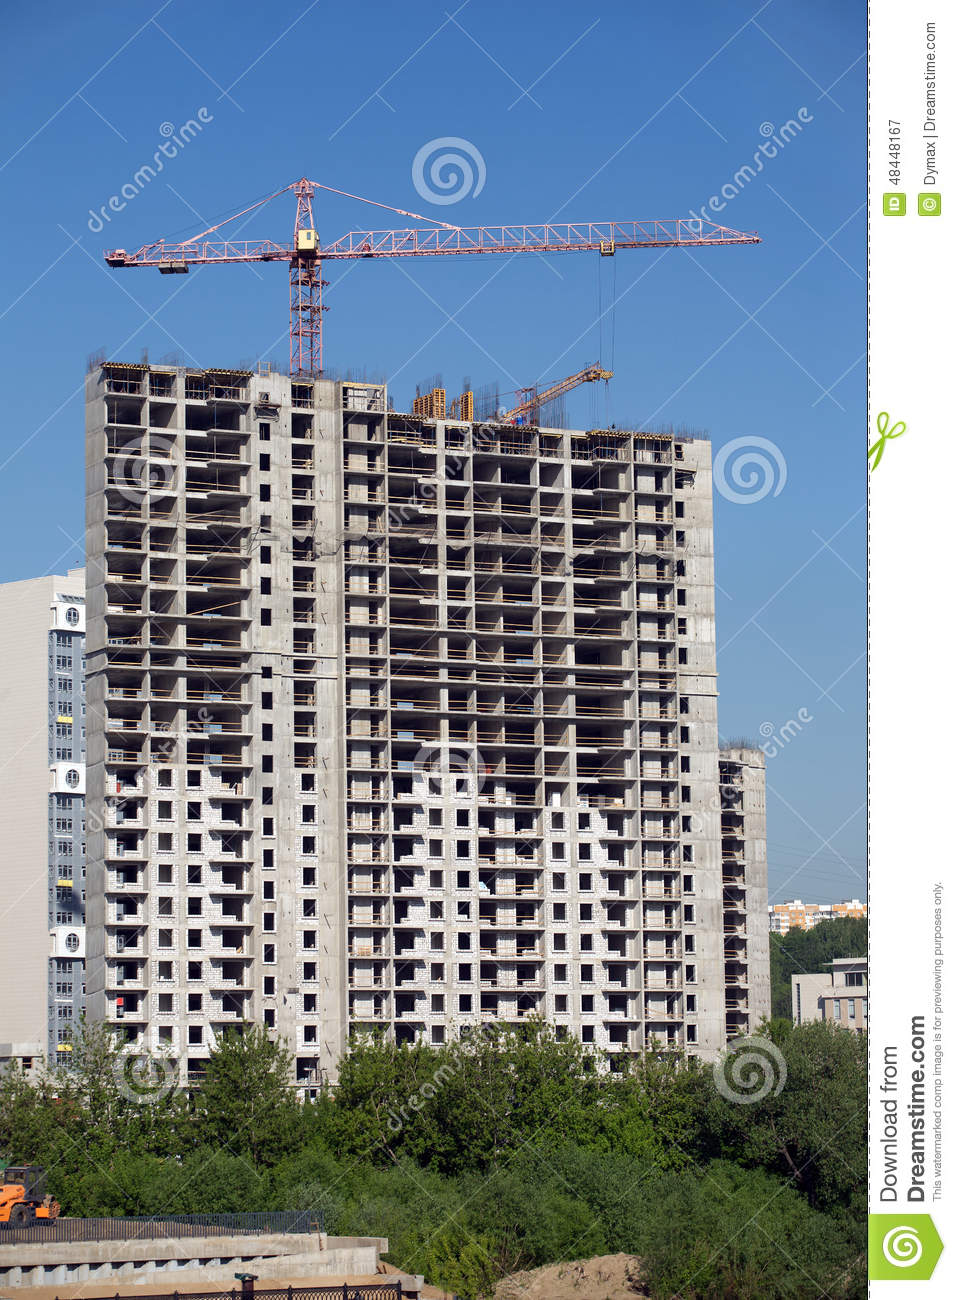 Construction of the building hoisting crane royalty free for New construction building process